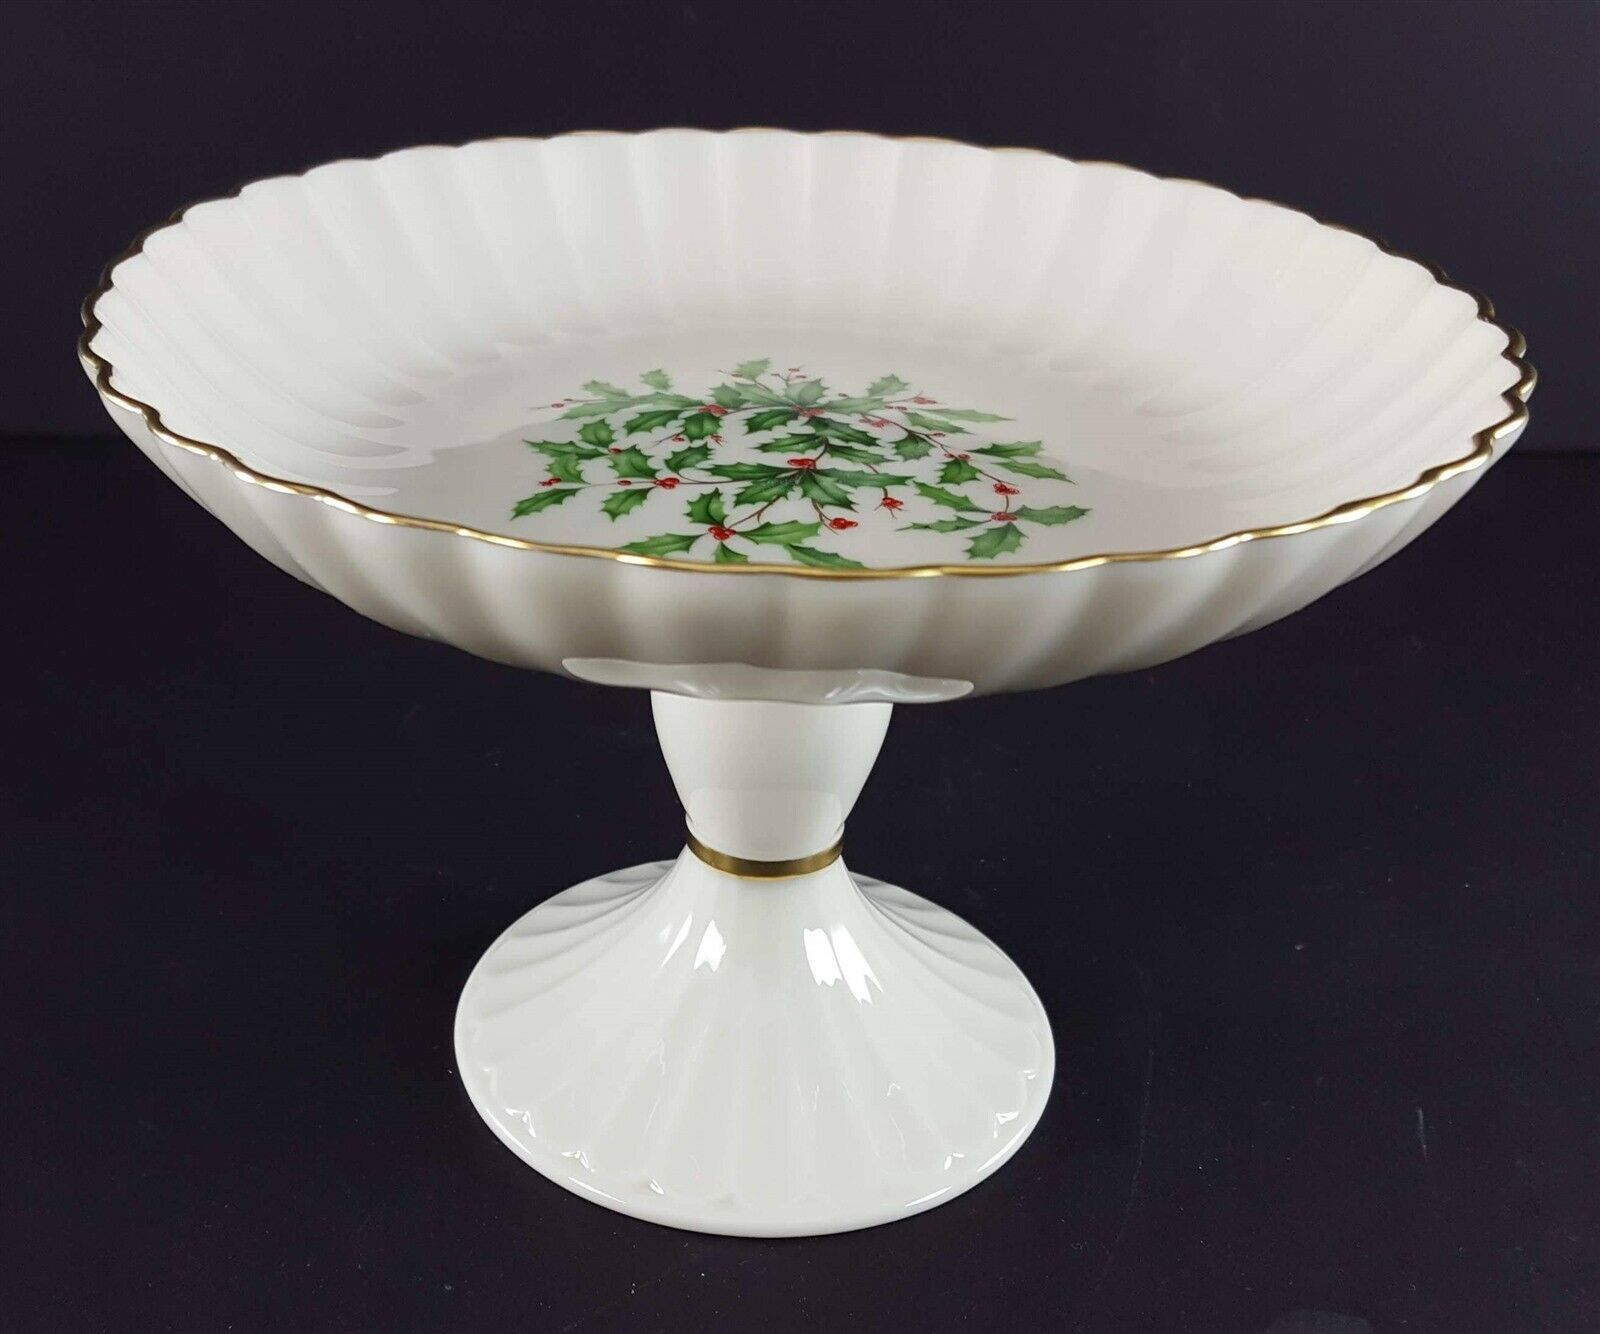 "LENOX China Holiday Dimension Round Compote Pedestal 5"" x 7-1/4"" Dinnerware image 4"